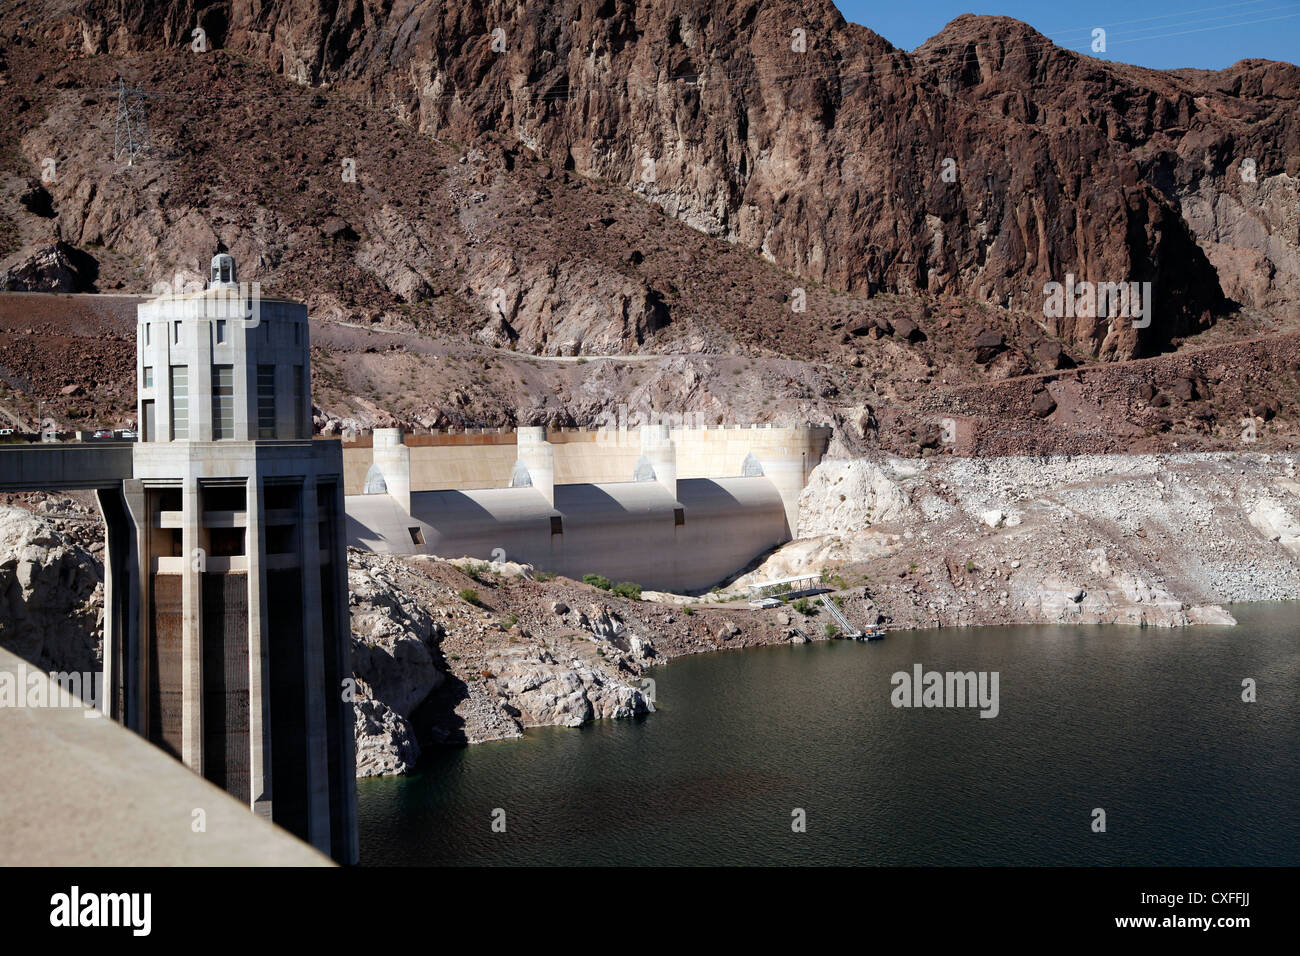 Shore of Lake Mead at Hoover Dam, Showing Penstock Tower on the Nevada Side Stock Photo